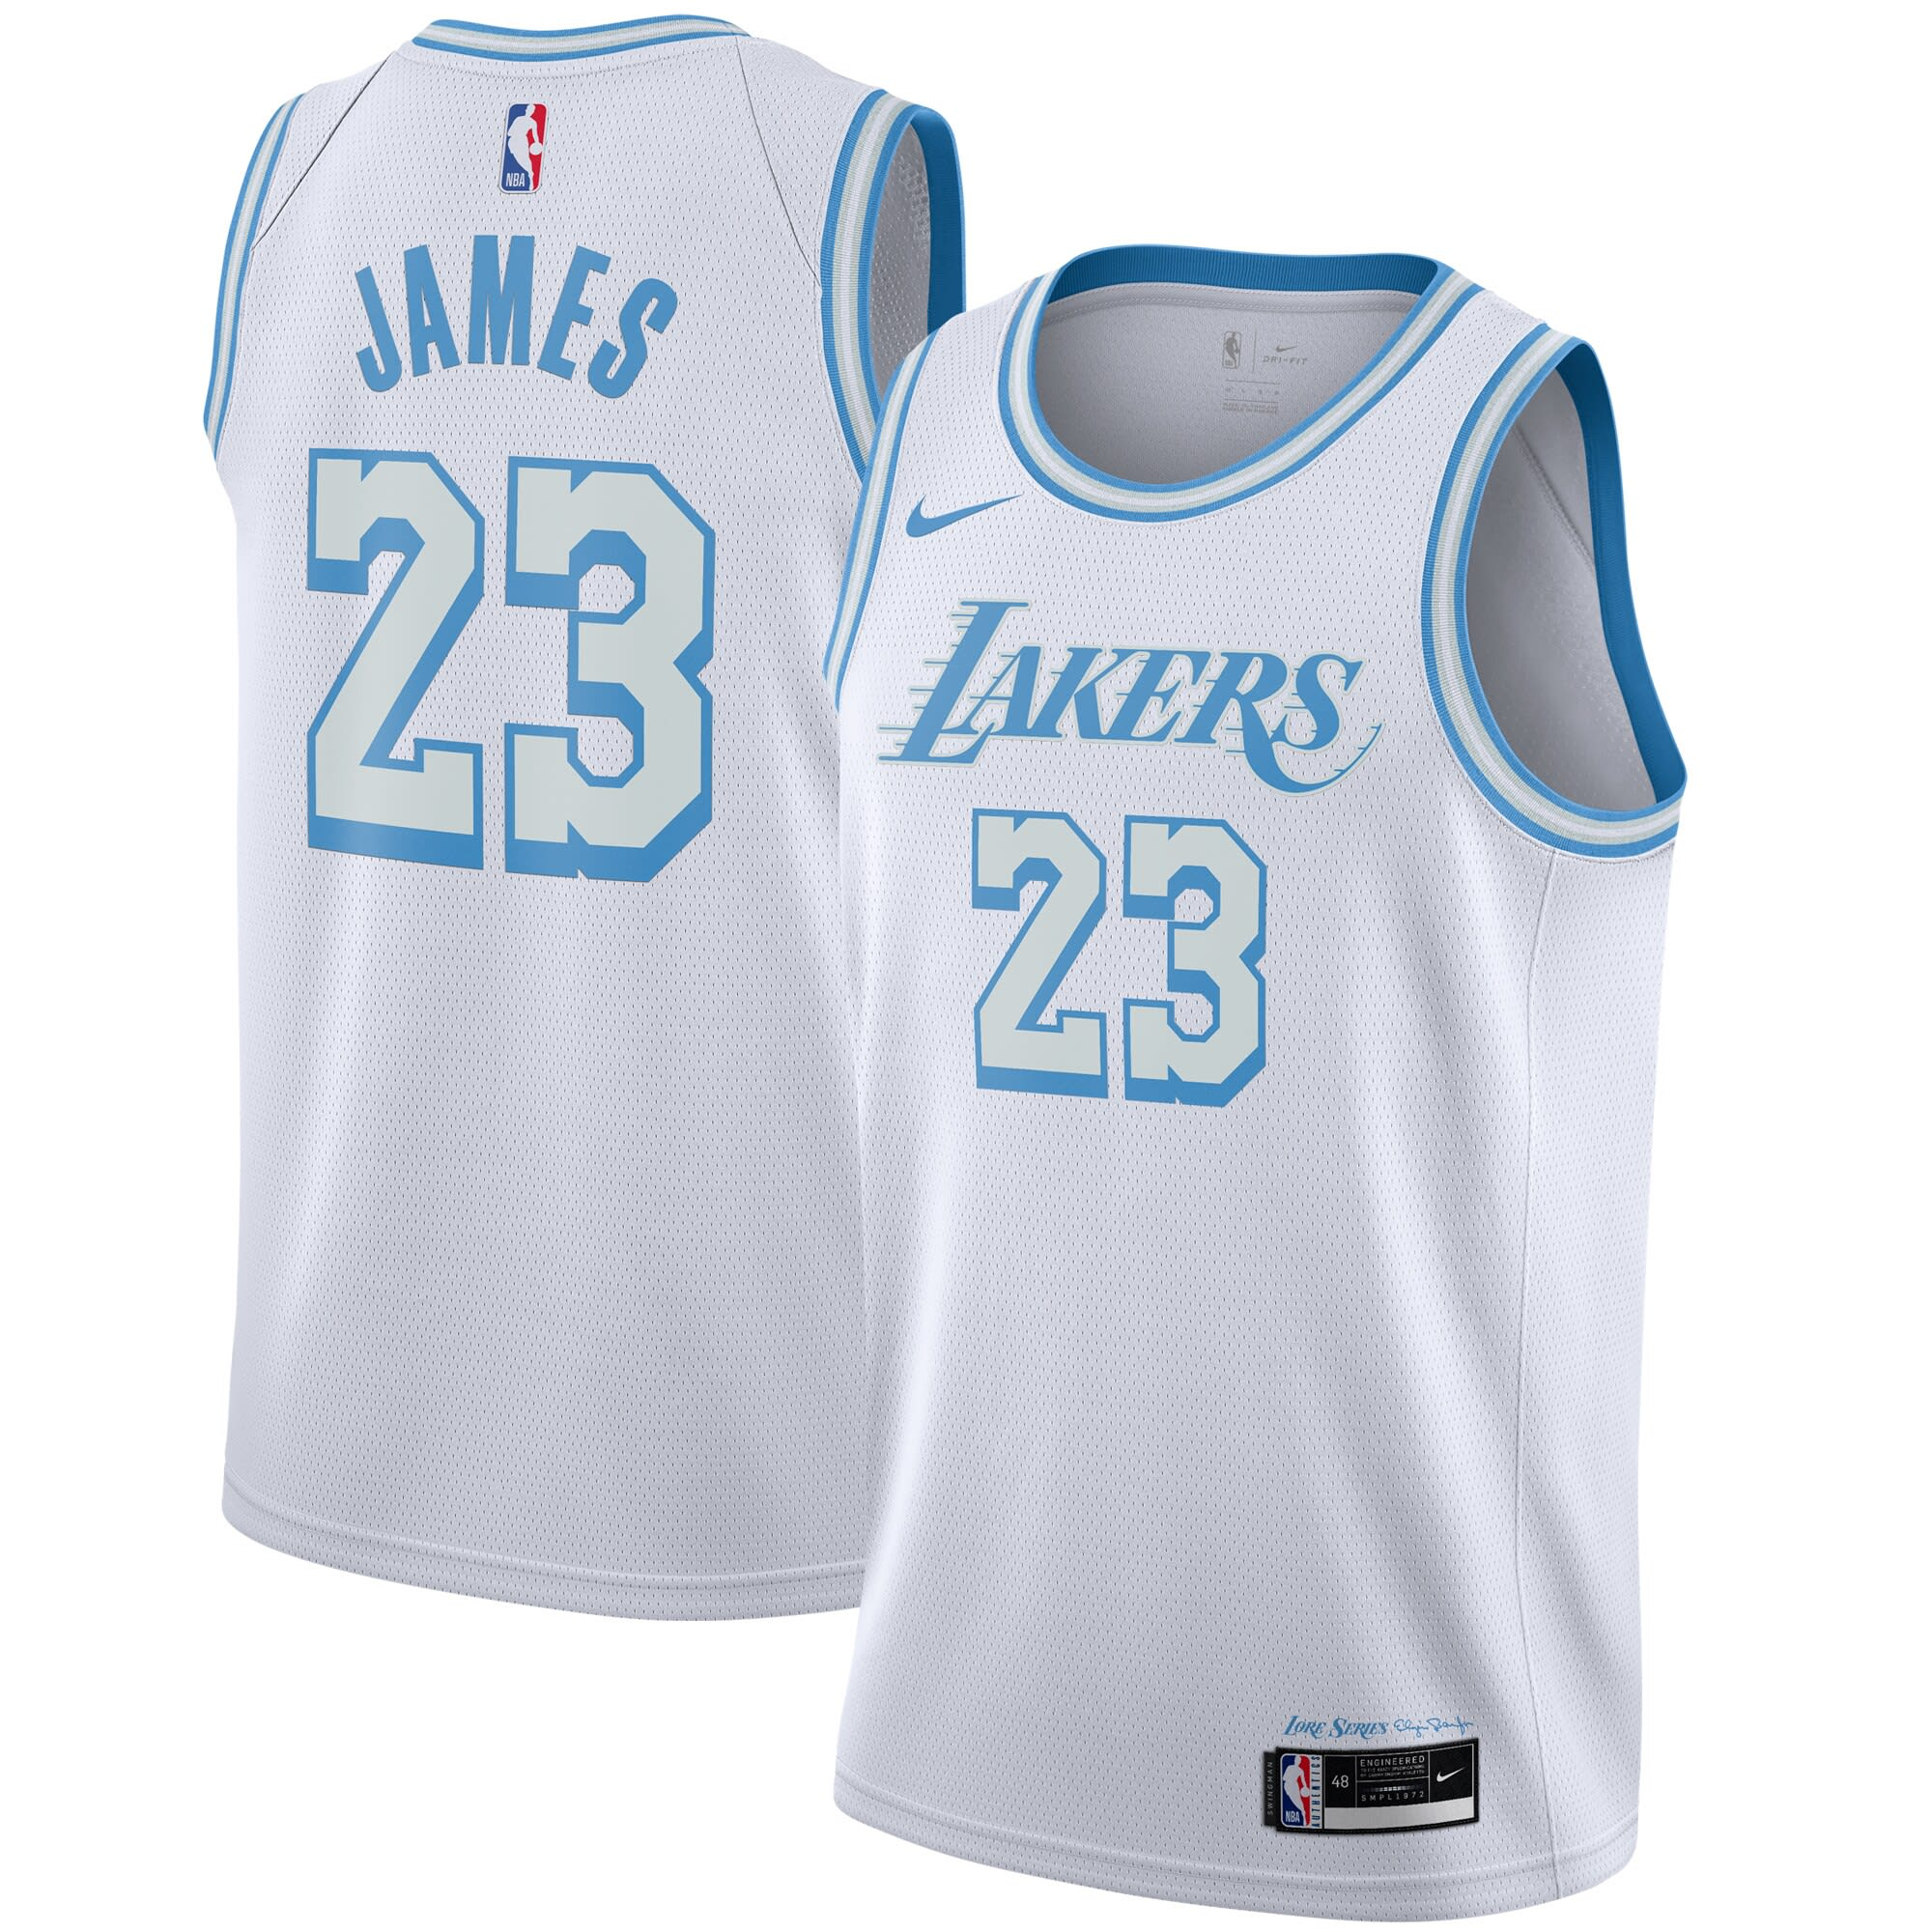 Order the amazing Los Angeles Lakers Nike City Edition jersey now